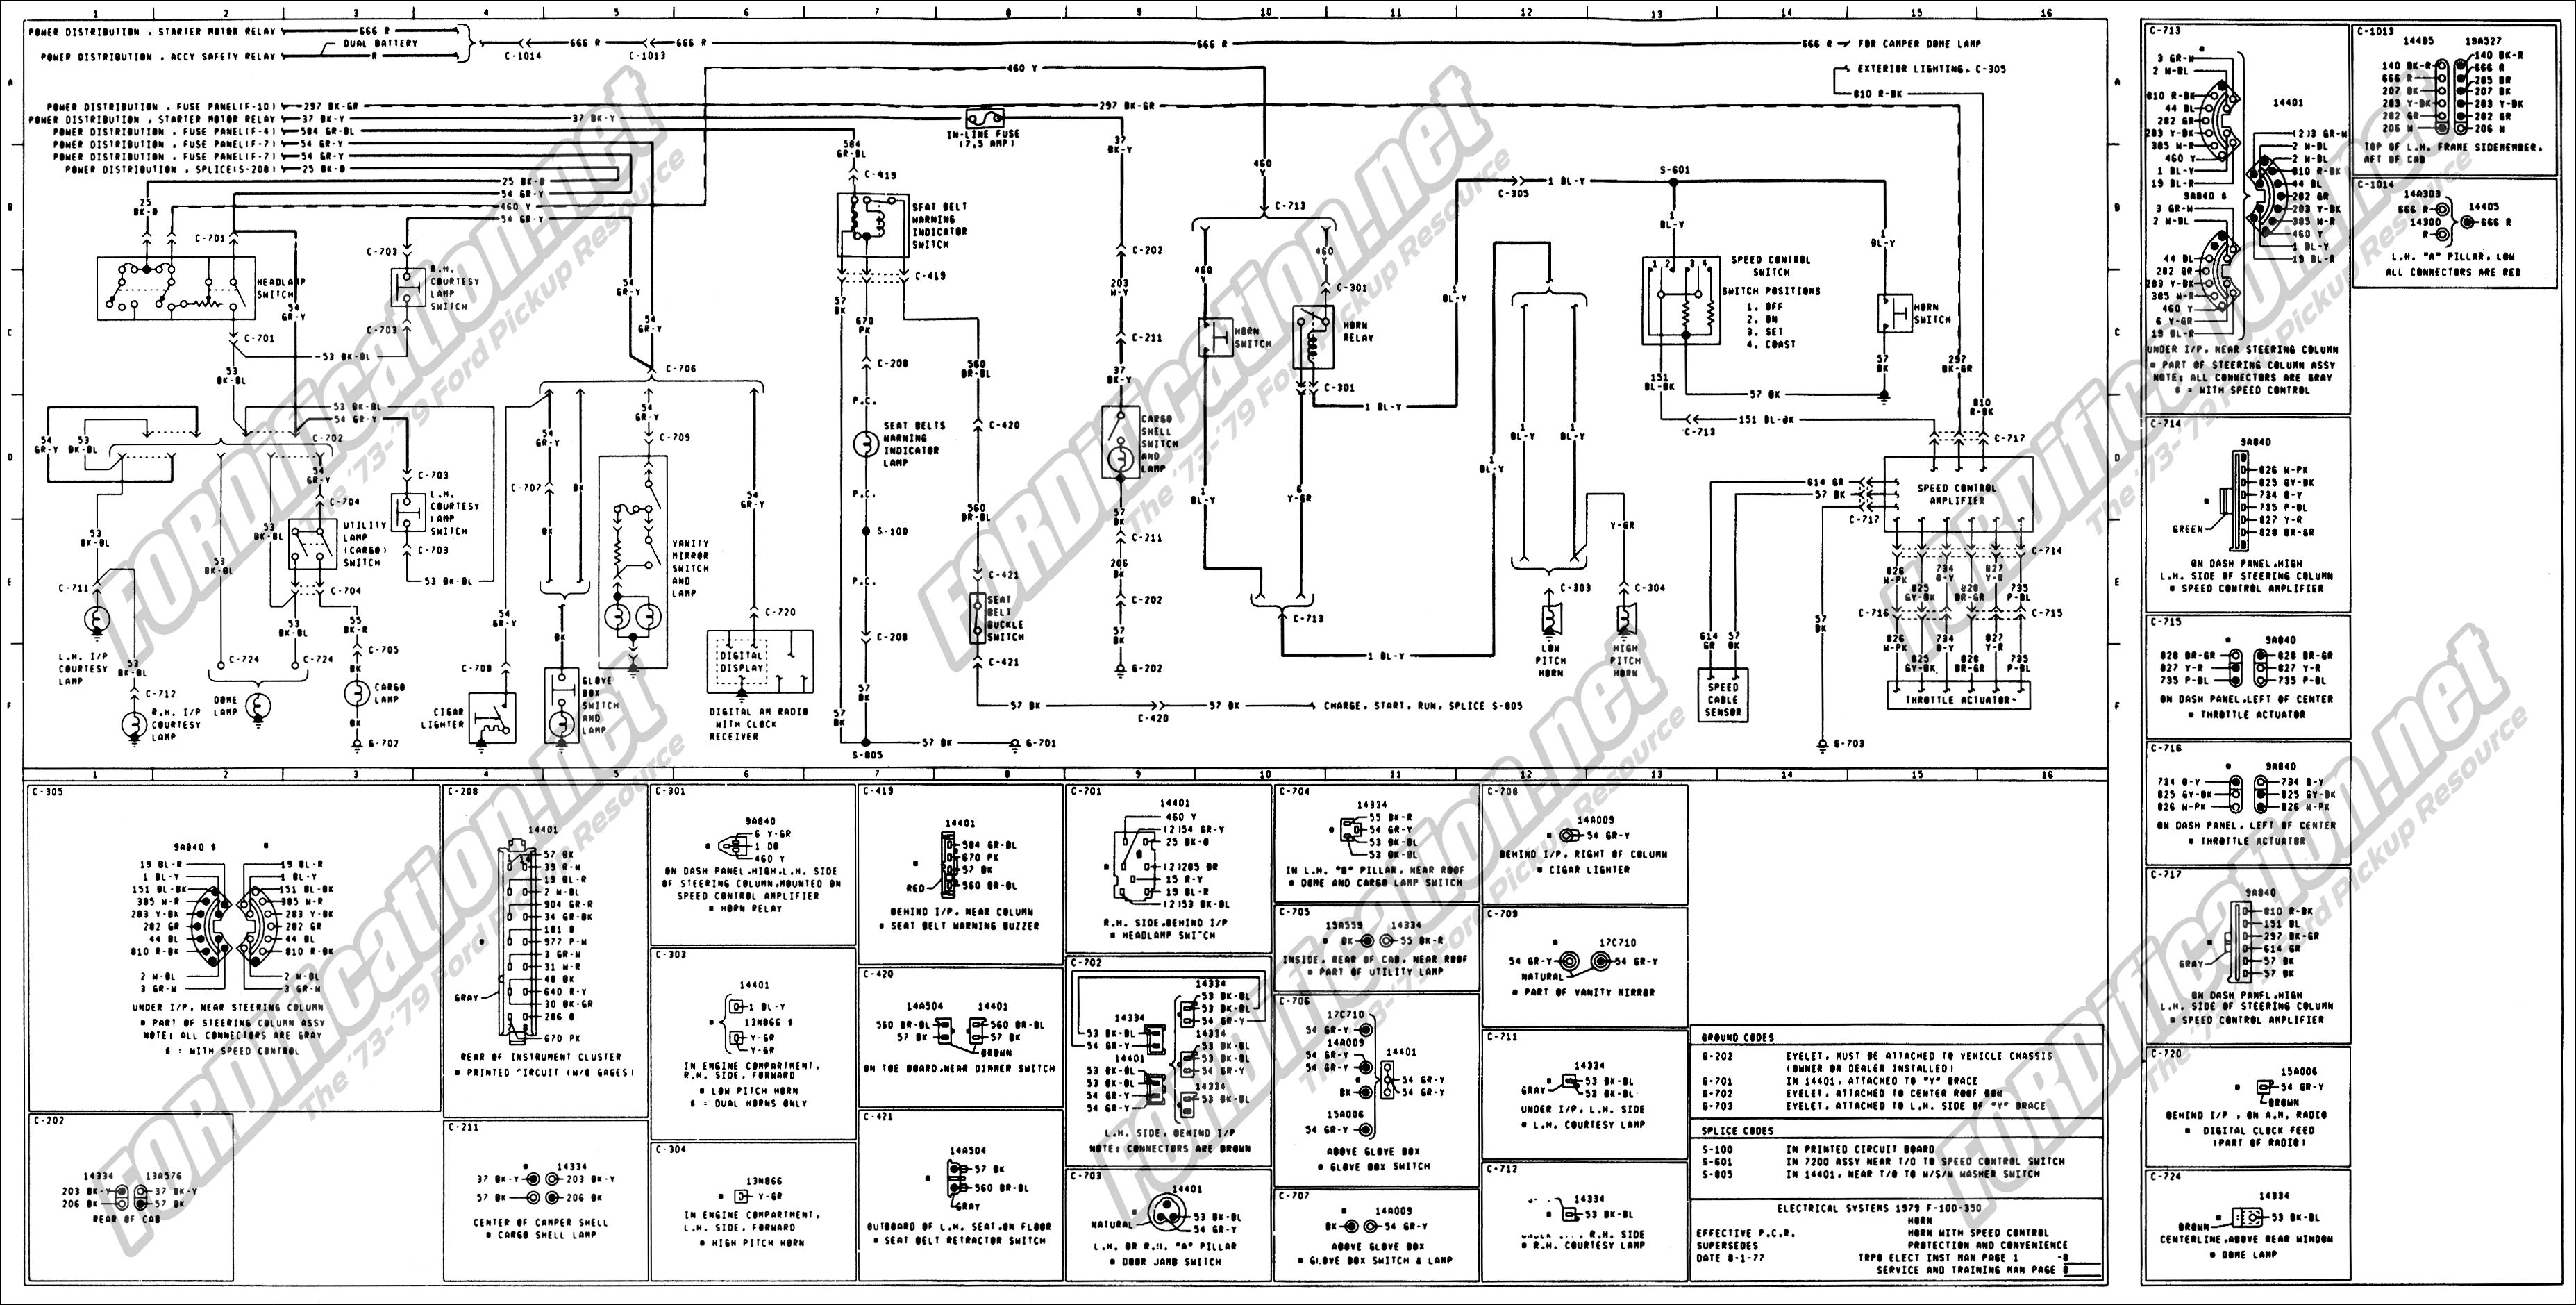 wiring_79master_8of9 1973 1979 ford truck wiring diagrams & schematics fordification net 1978 bronco fuse box diagram at virtualis.co